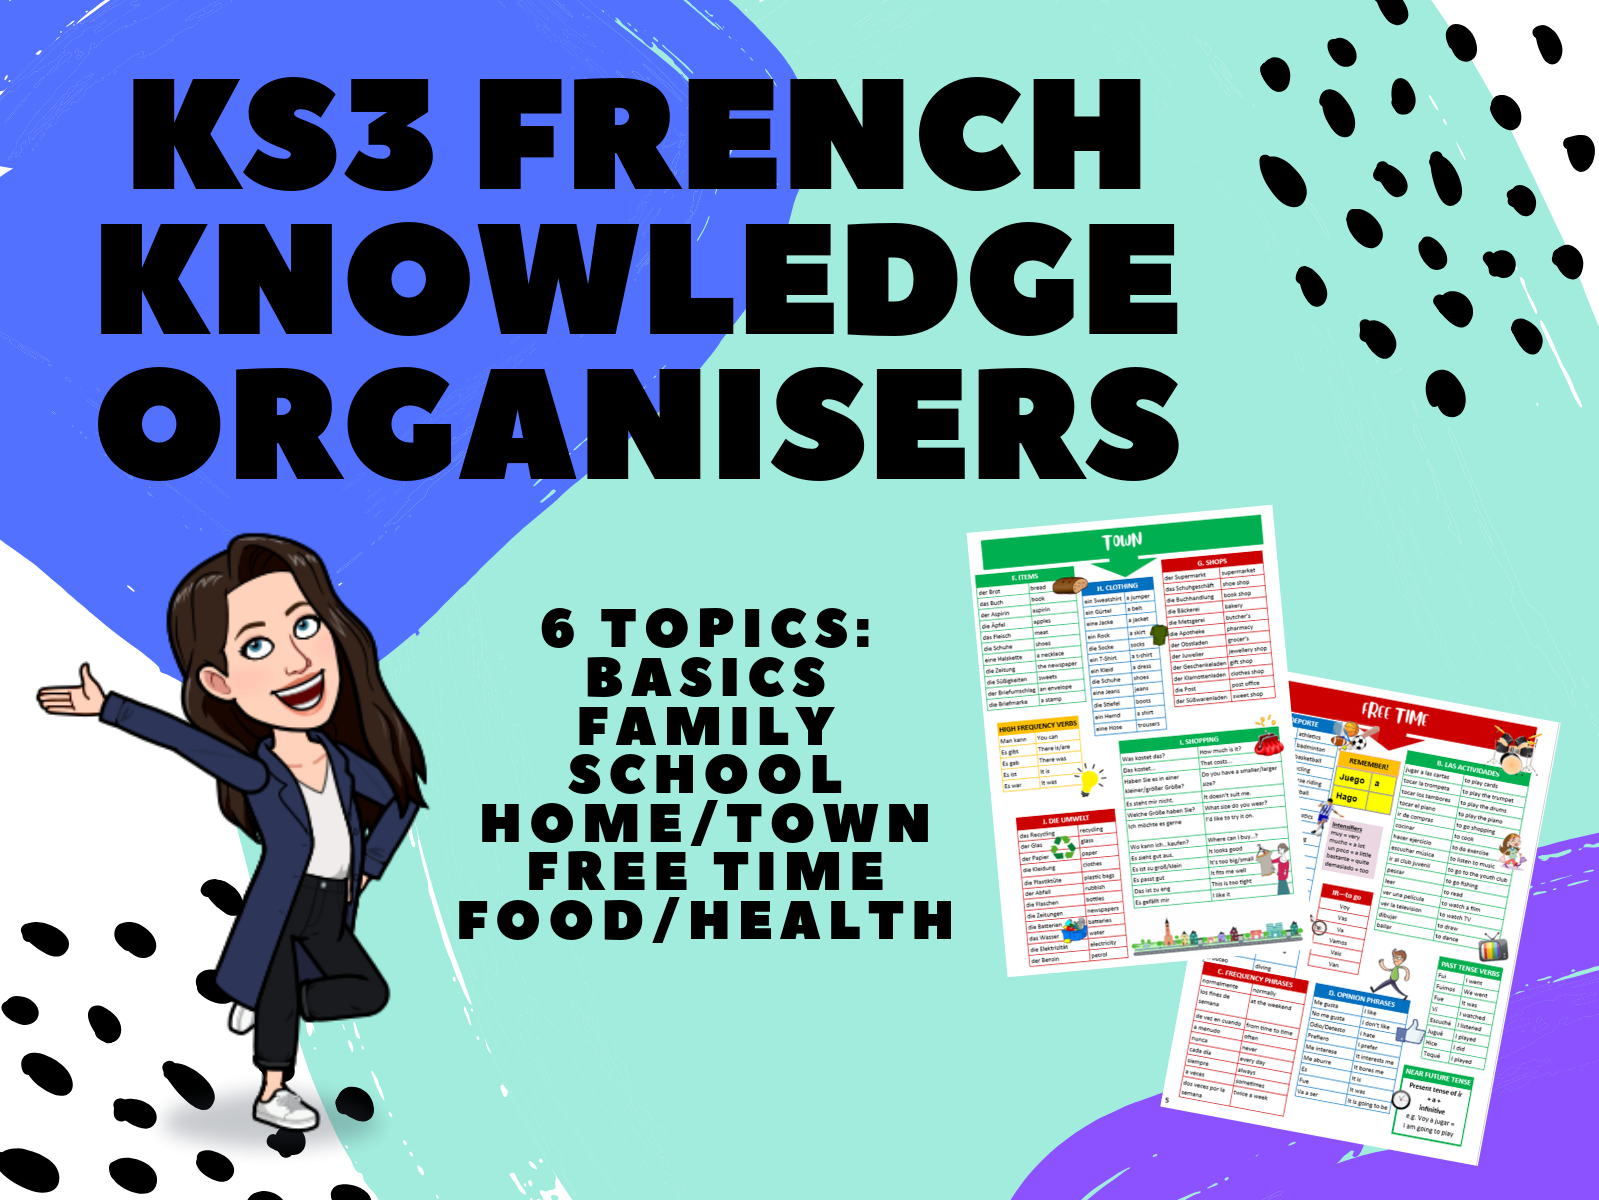 KS3 French Knowledge Organisers 6-Topic Bundle